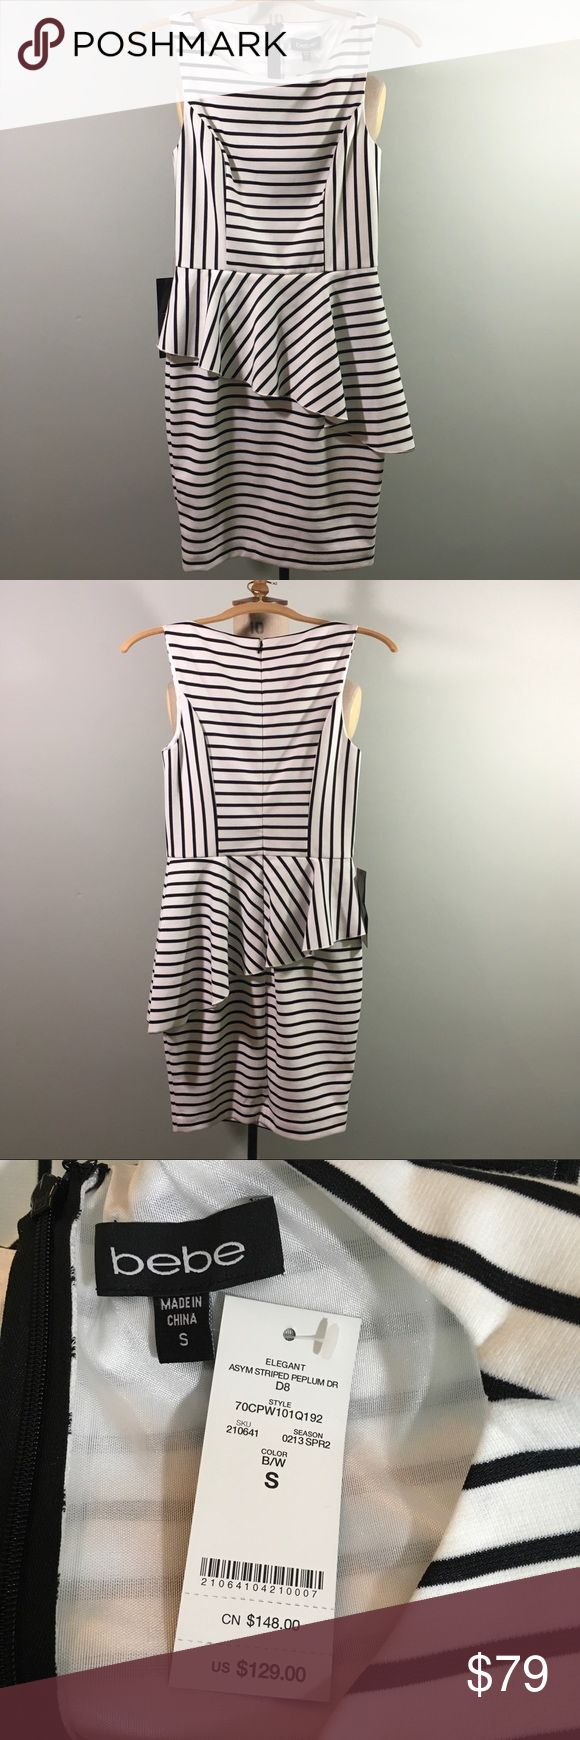 """bebe // Striped Asymmetrical Peplum Dress // B & W Classy striped dress with asymmetrical peplum. New with tags, never worn, excellent condition. White with black stripes. Retail Value: $129.00  Polyester/Spandex. Size Small. Approximate Measurements: Bust 32"""" Waist 6"""" Hips 36"""" Length 34""""  Tags: Wear to Work or Church, Sophisticated, Elegant, NWT  ✅Bundle discounts ✅ Will consider reasonable offers 🚫No trades ✉️Please let me know if you have questions, I'm happy to answer  📷 Check out my…"""